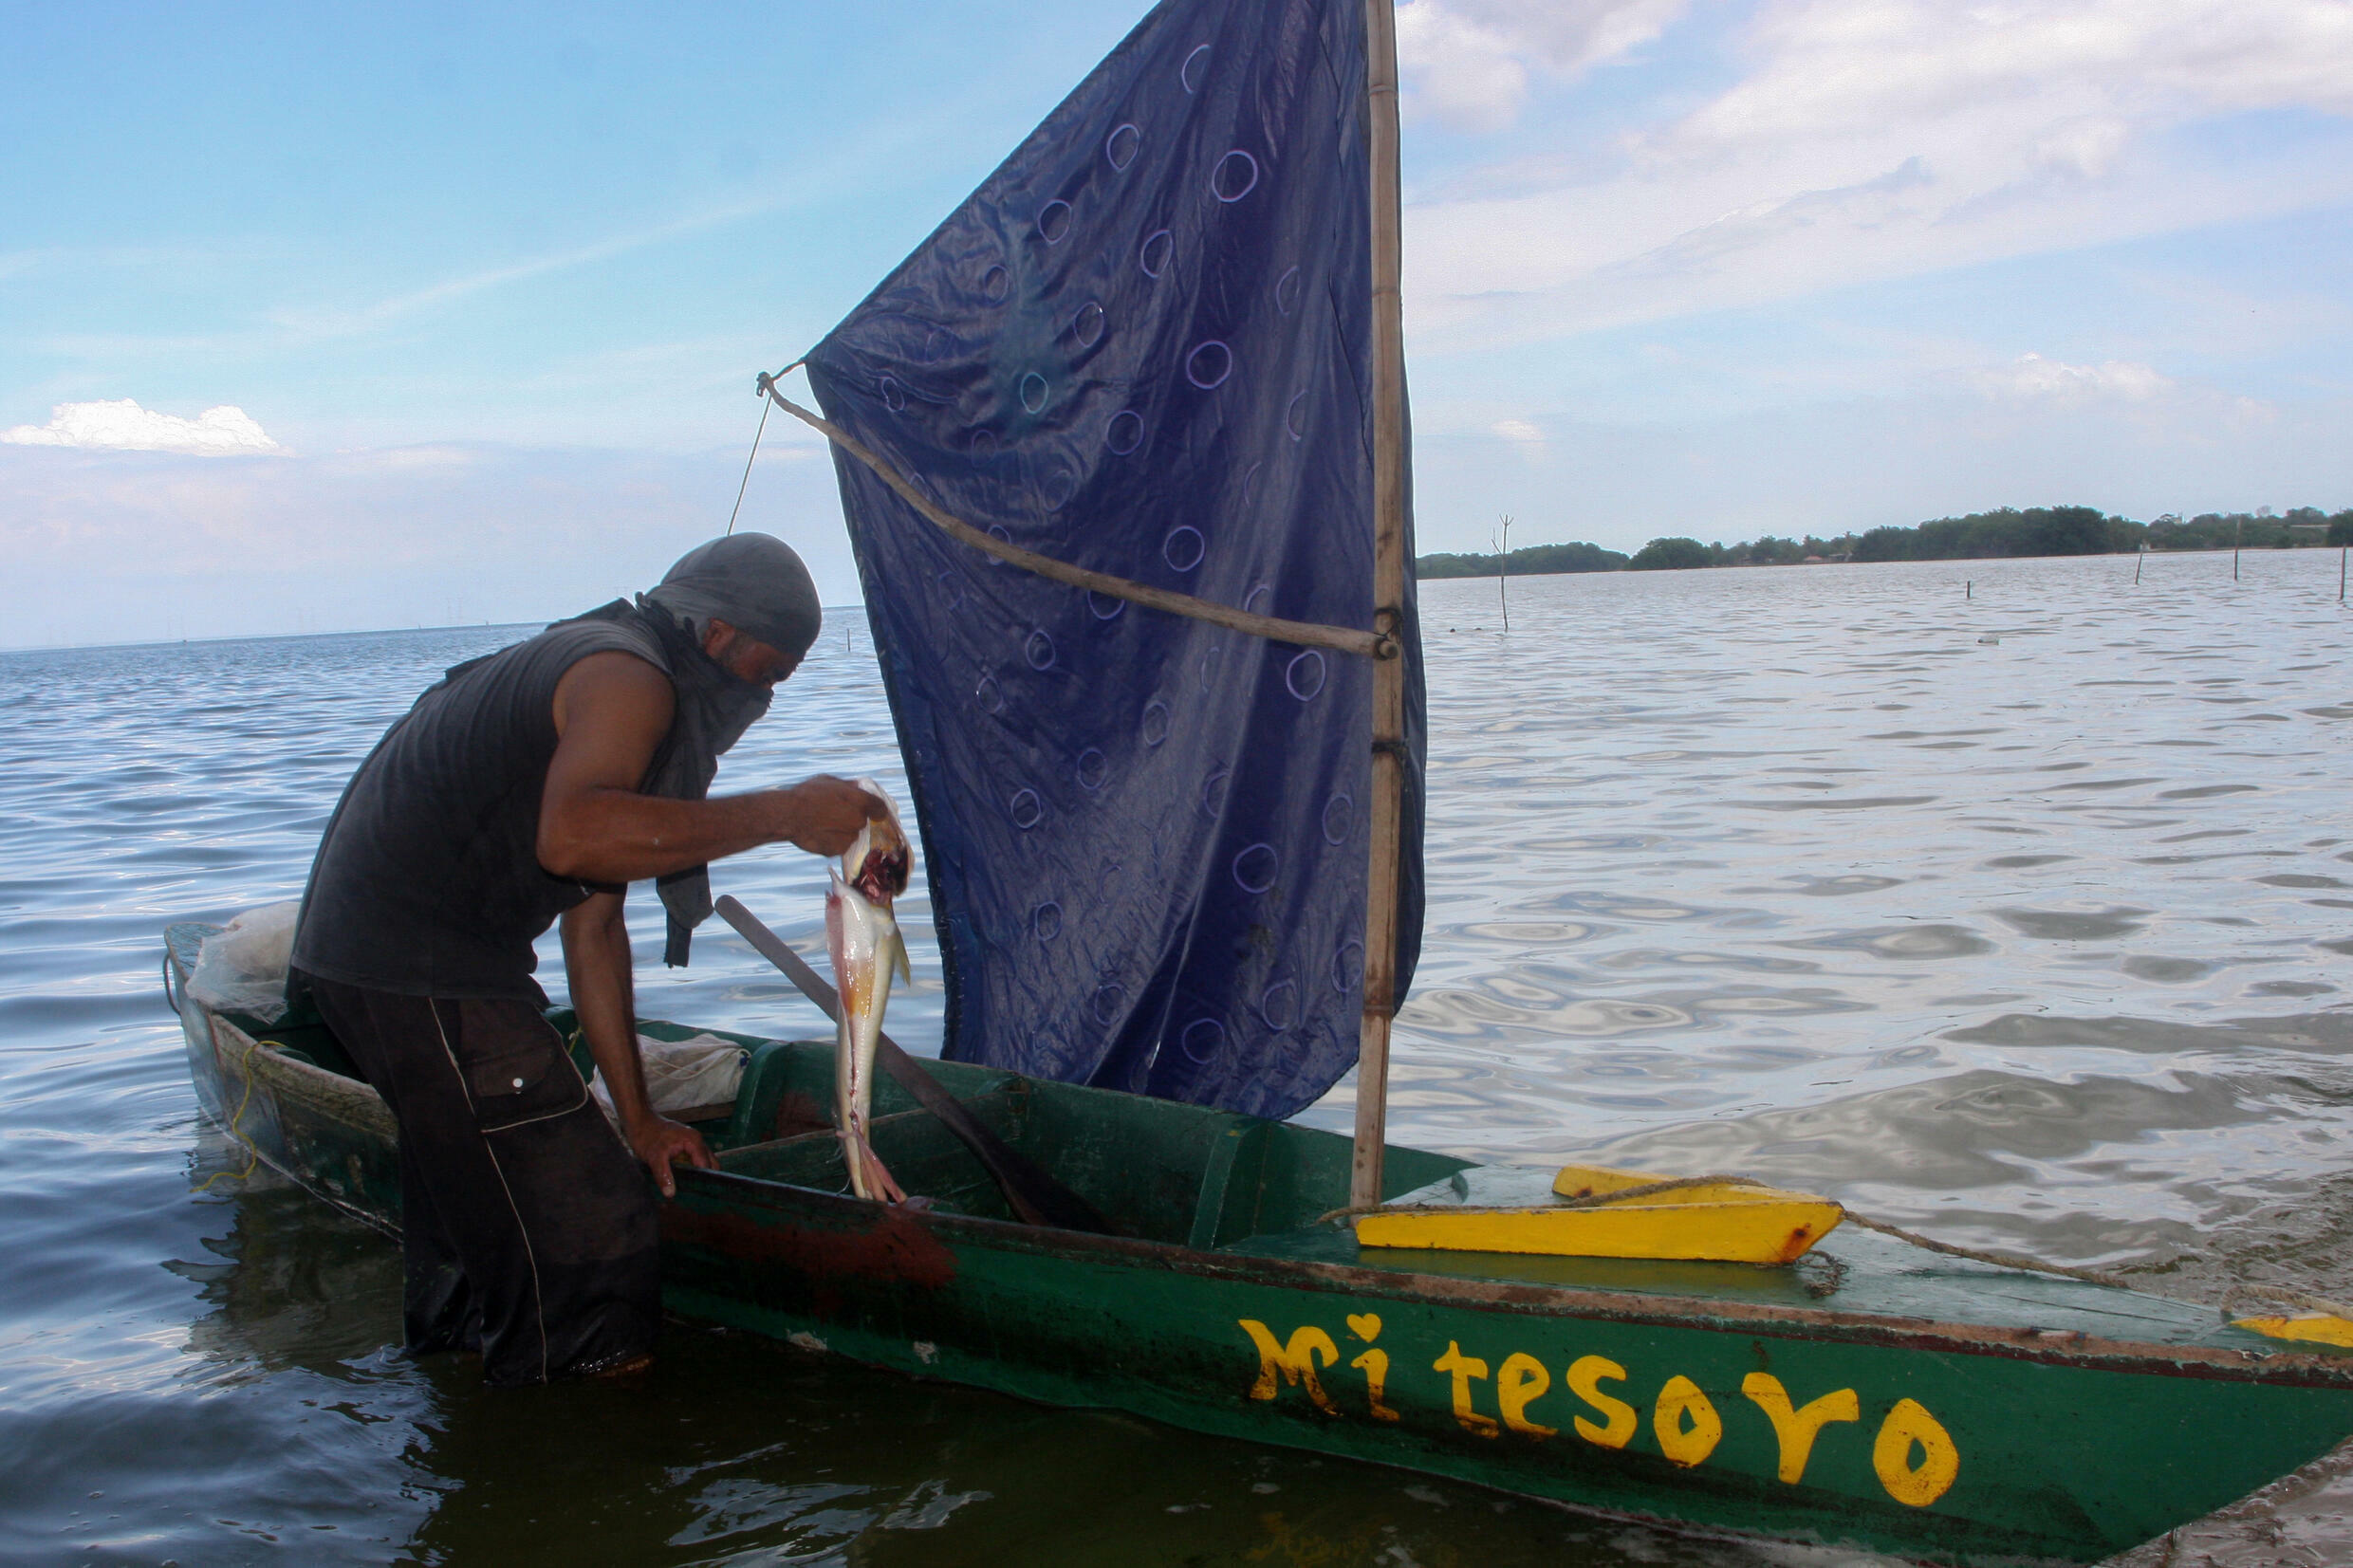 Fishermen return home with meager pickings after a morning on the lake